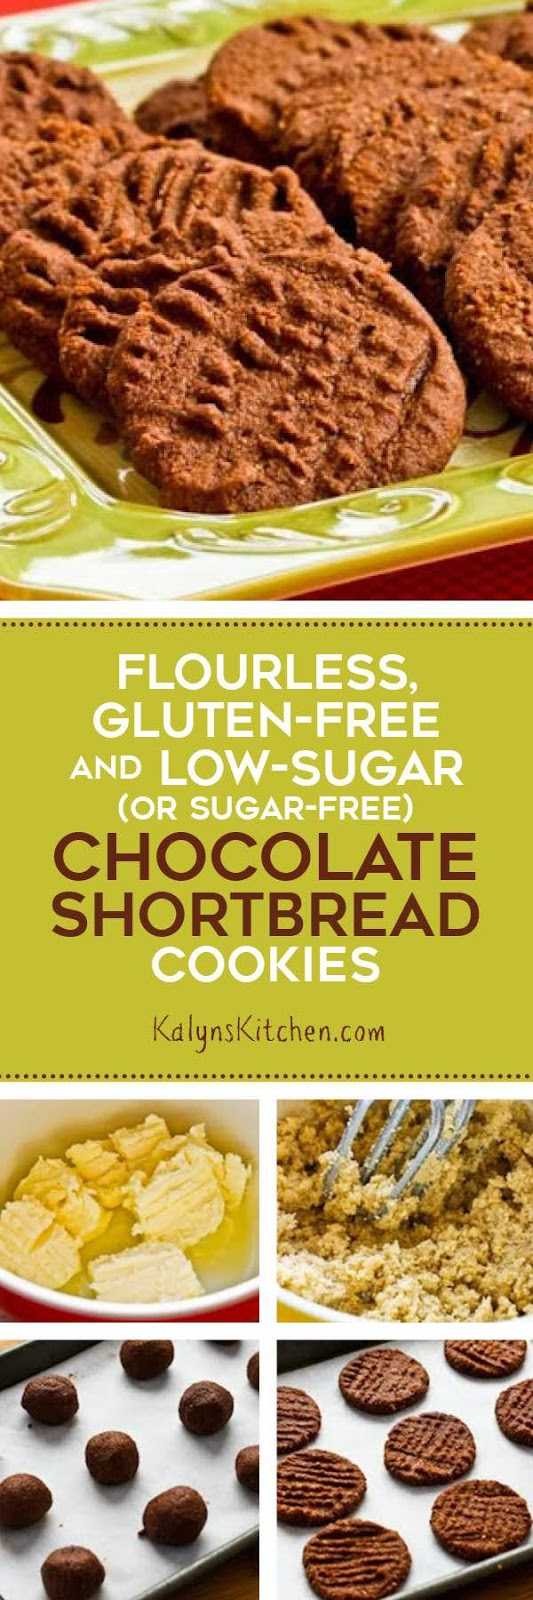 ®: Flourless, Gluten-Free, and Low-Sugar (or Sugar-Free) Chocolate ...